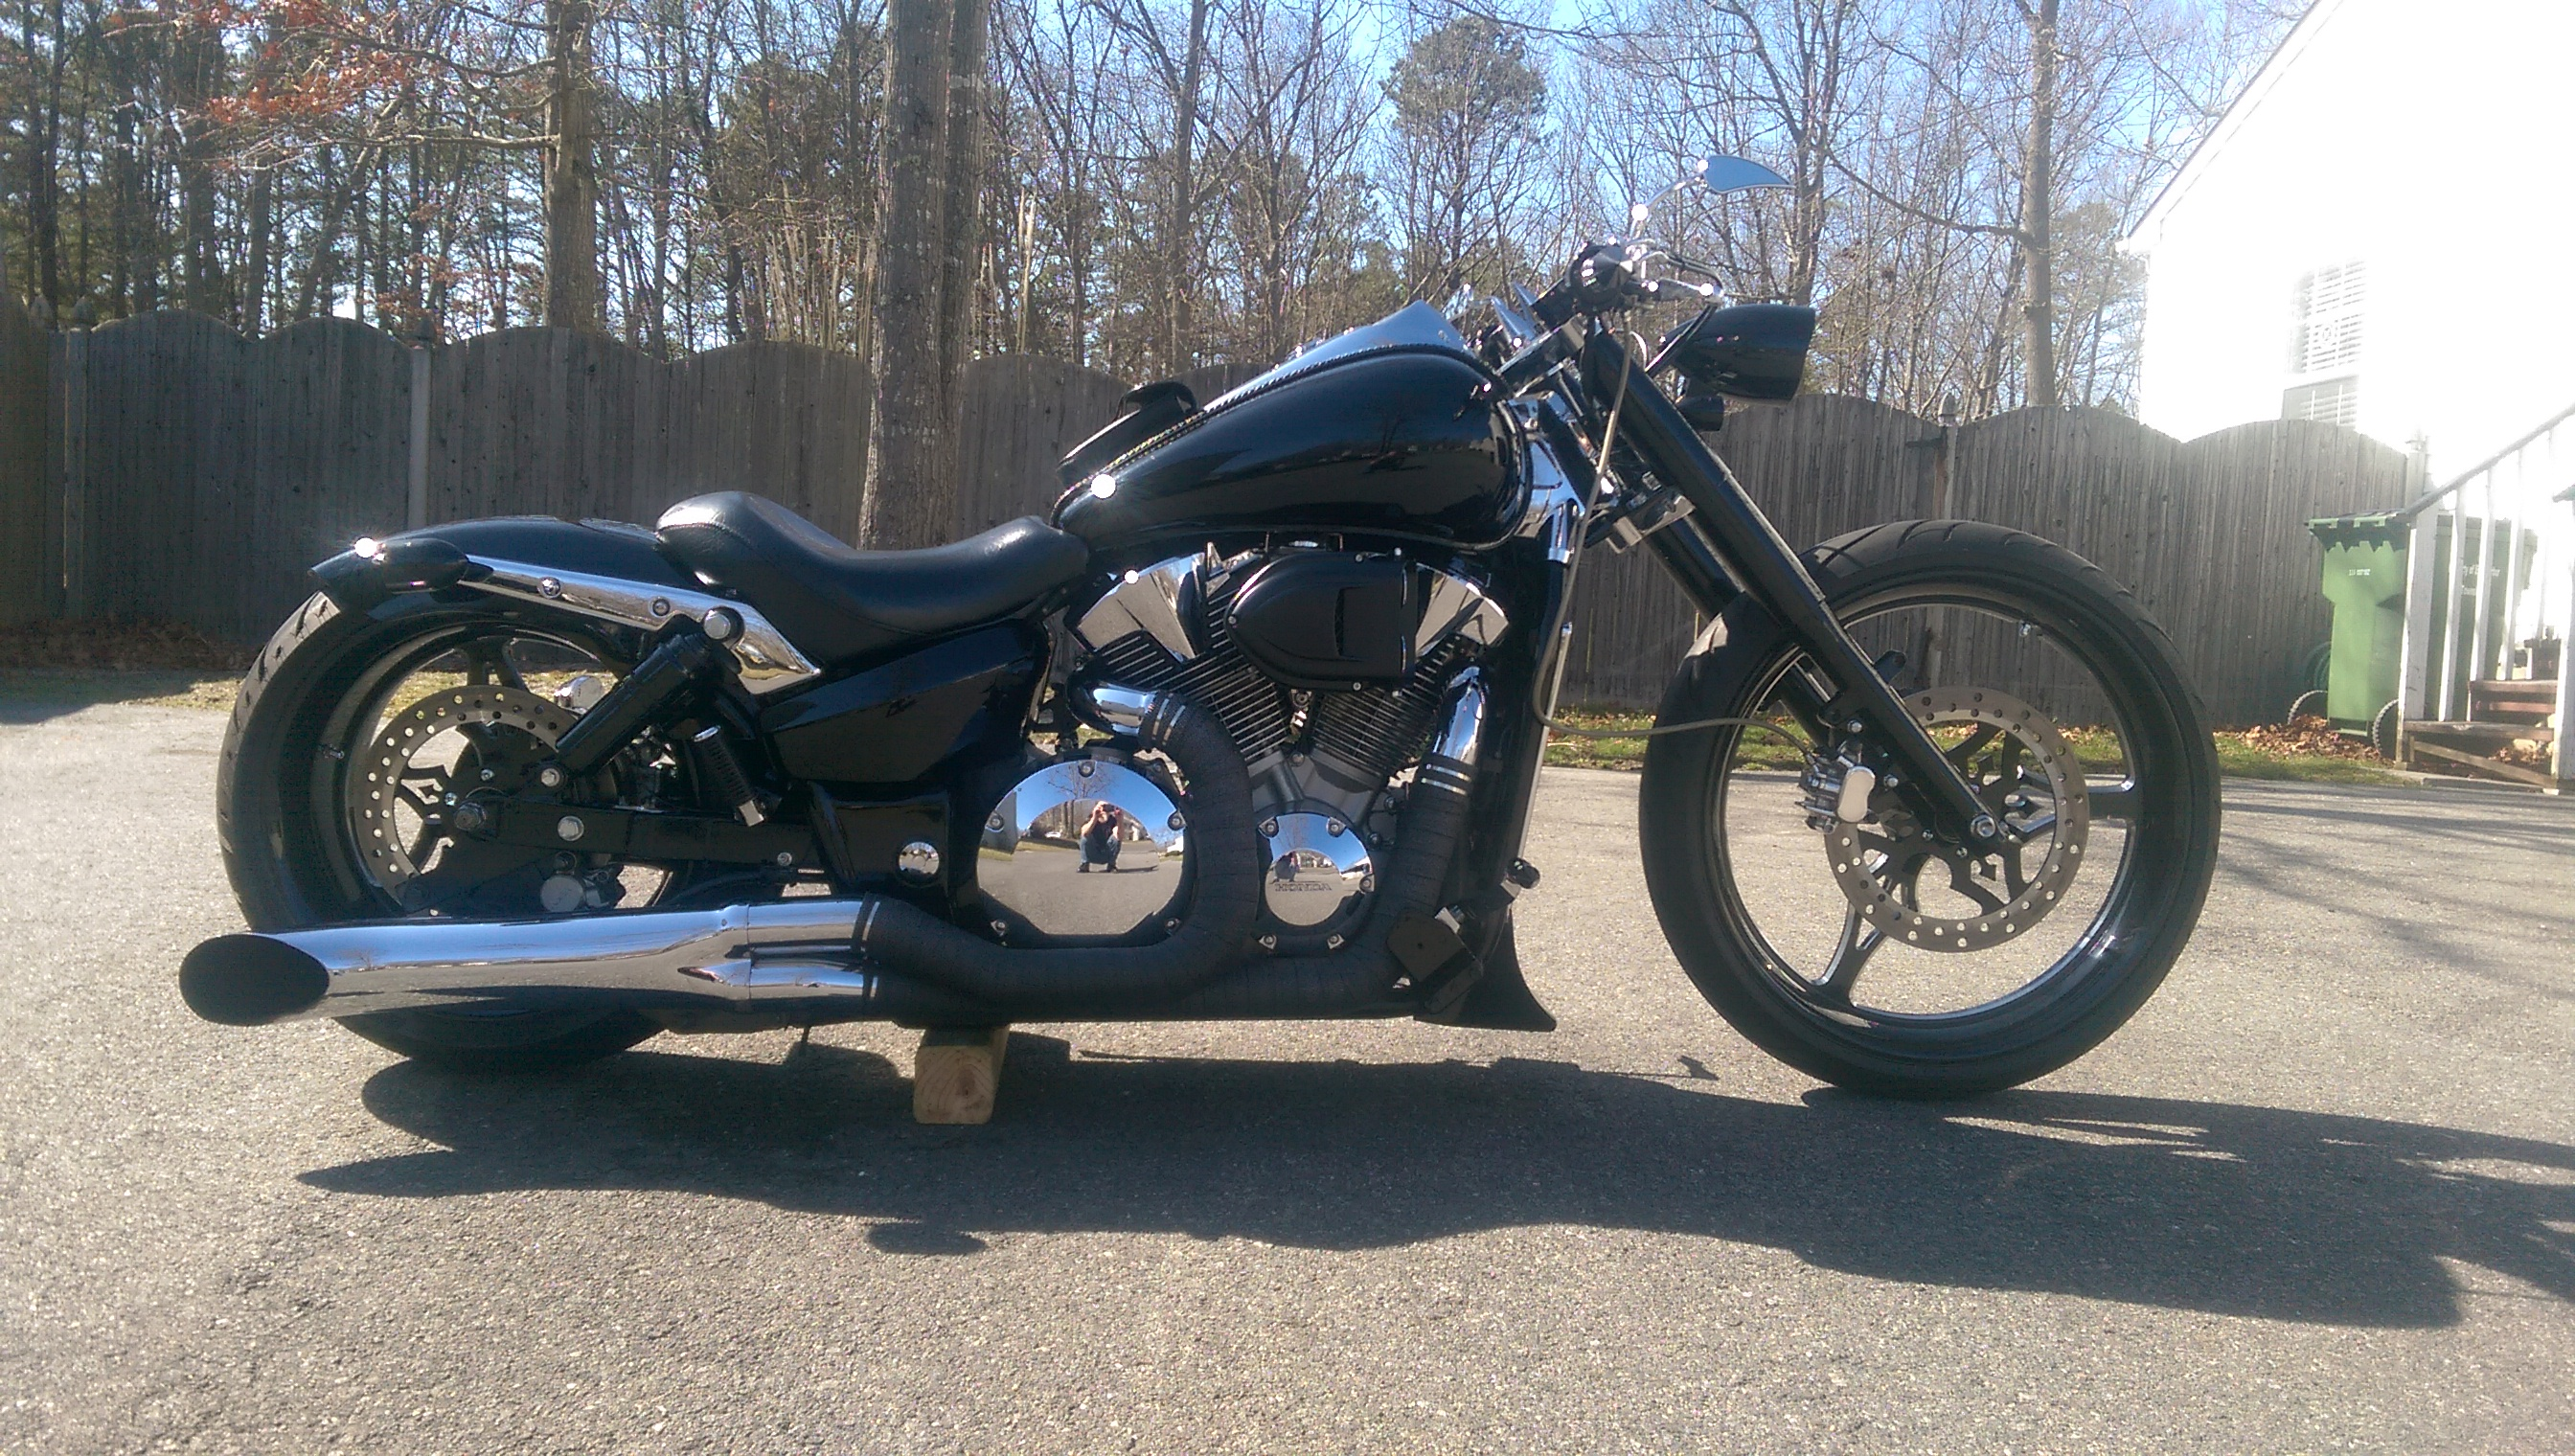 wild bikers motorcycles plete standard rear air ride for your